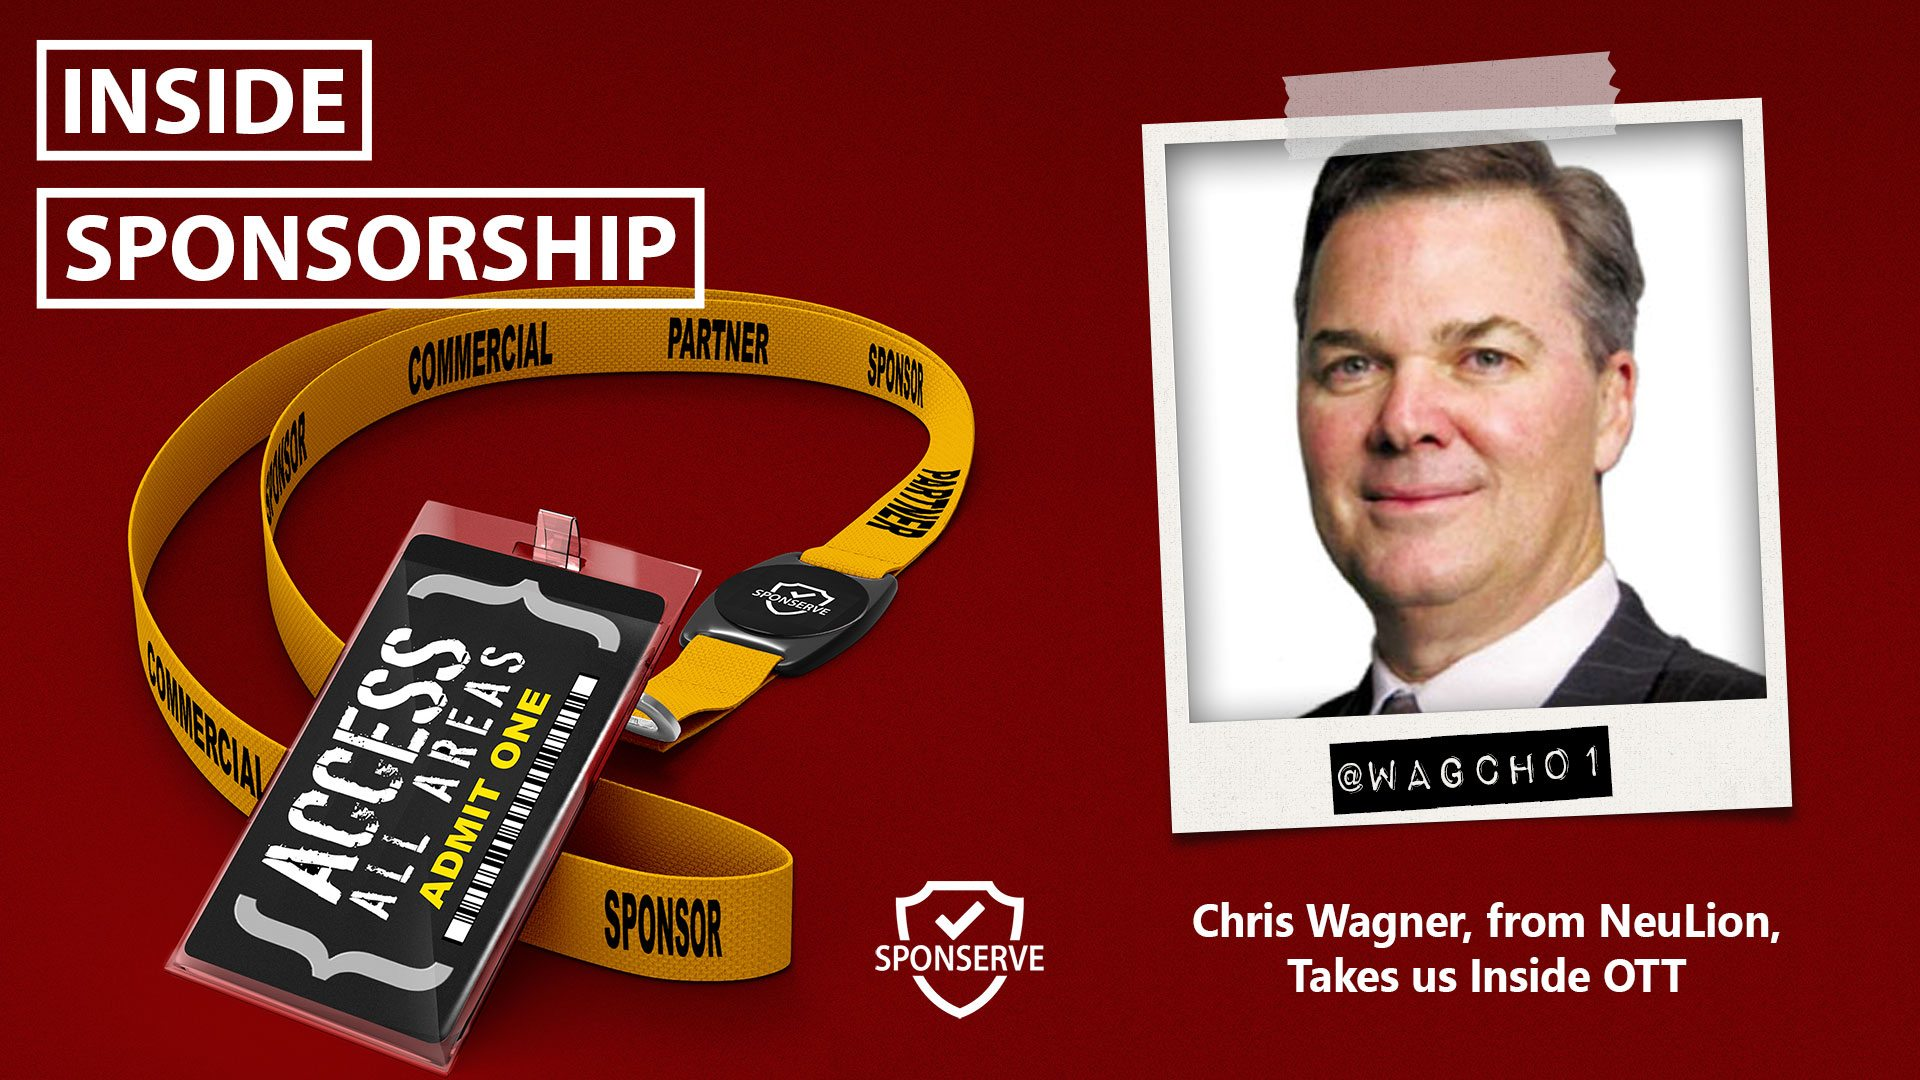 chris wagner inside sponsorship OTT